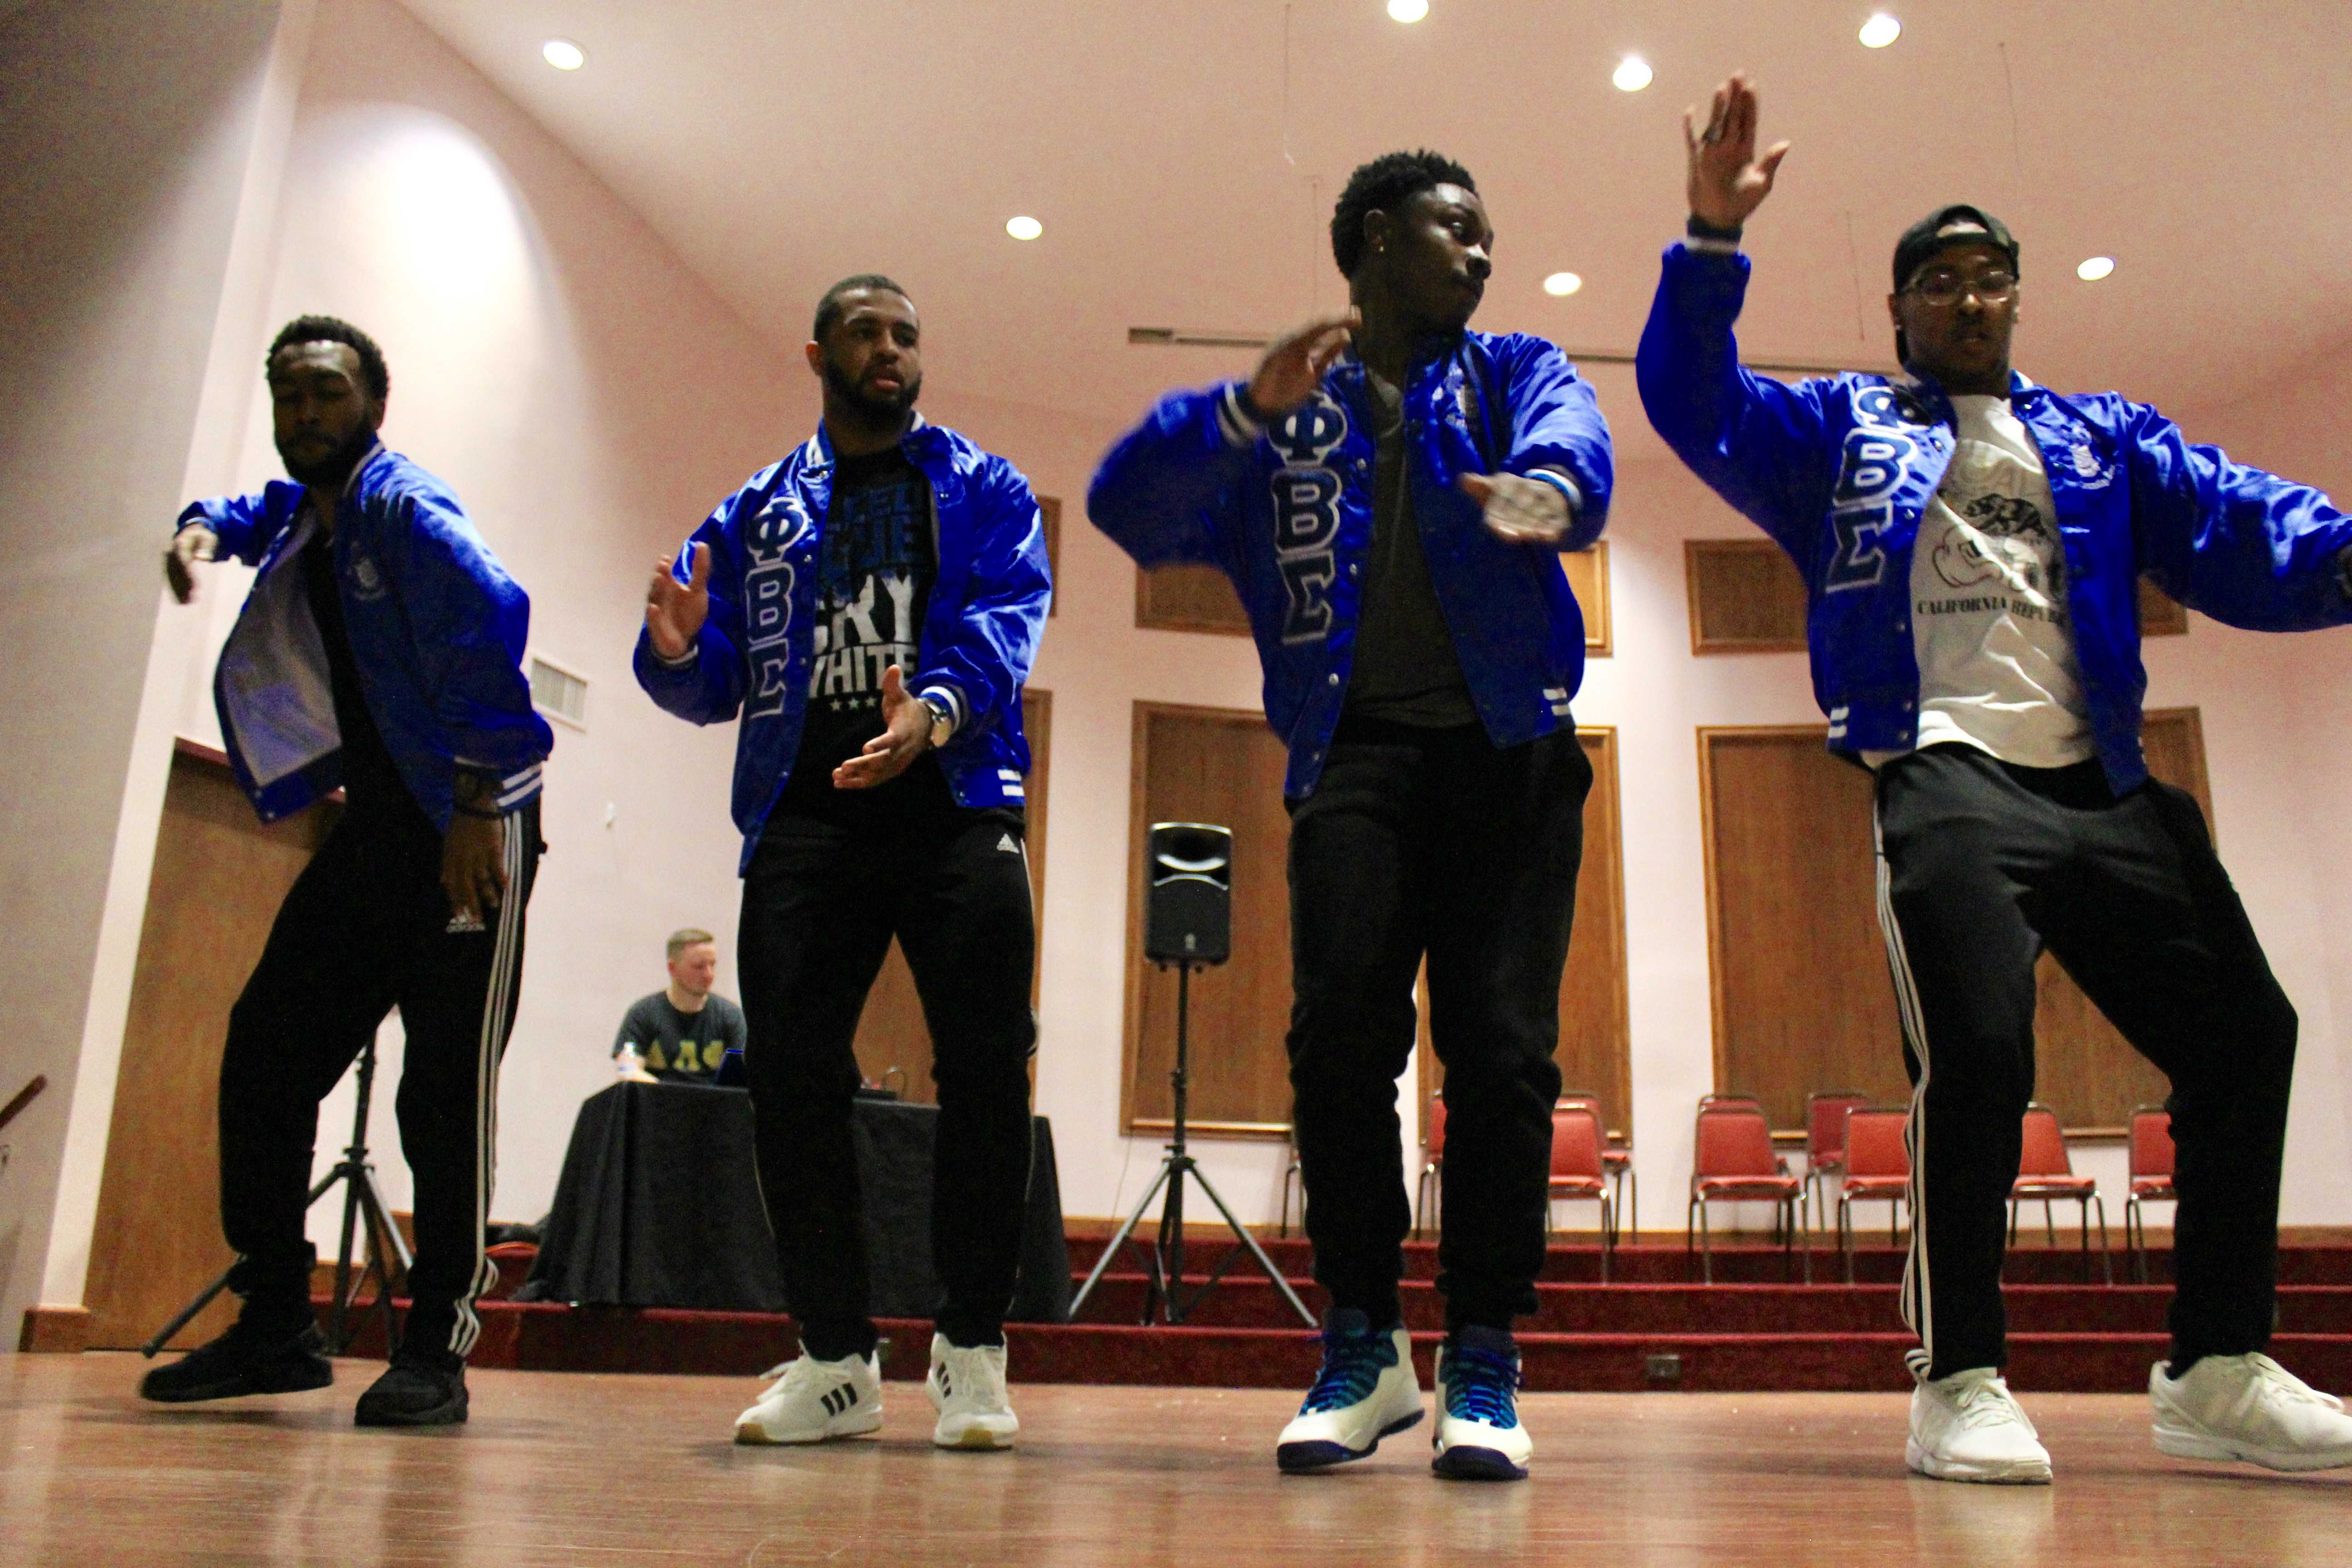 Phi Beta Sigma performs a stroll at the Lindenwood Greek Yard Show on Oct. 13 during Homecoming week in the LUCC building. From left: Lamar Merriweather, Ira Hughes, Charles McGill and Jesse Dean.  Photo by Lindsey Fiala